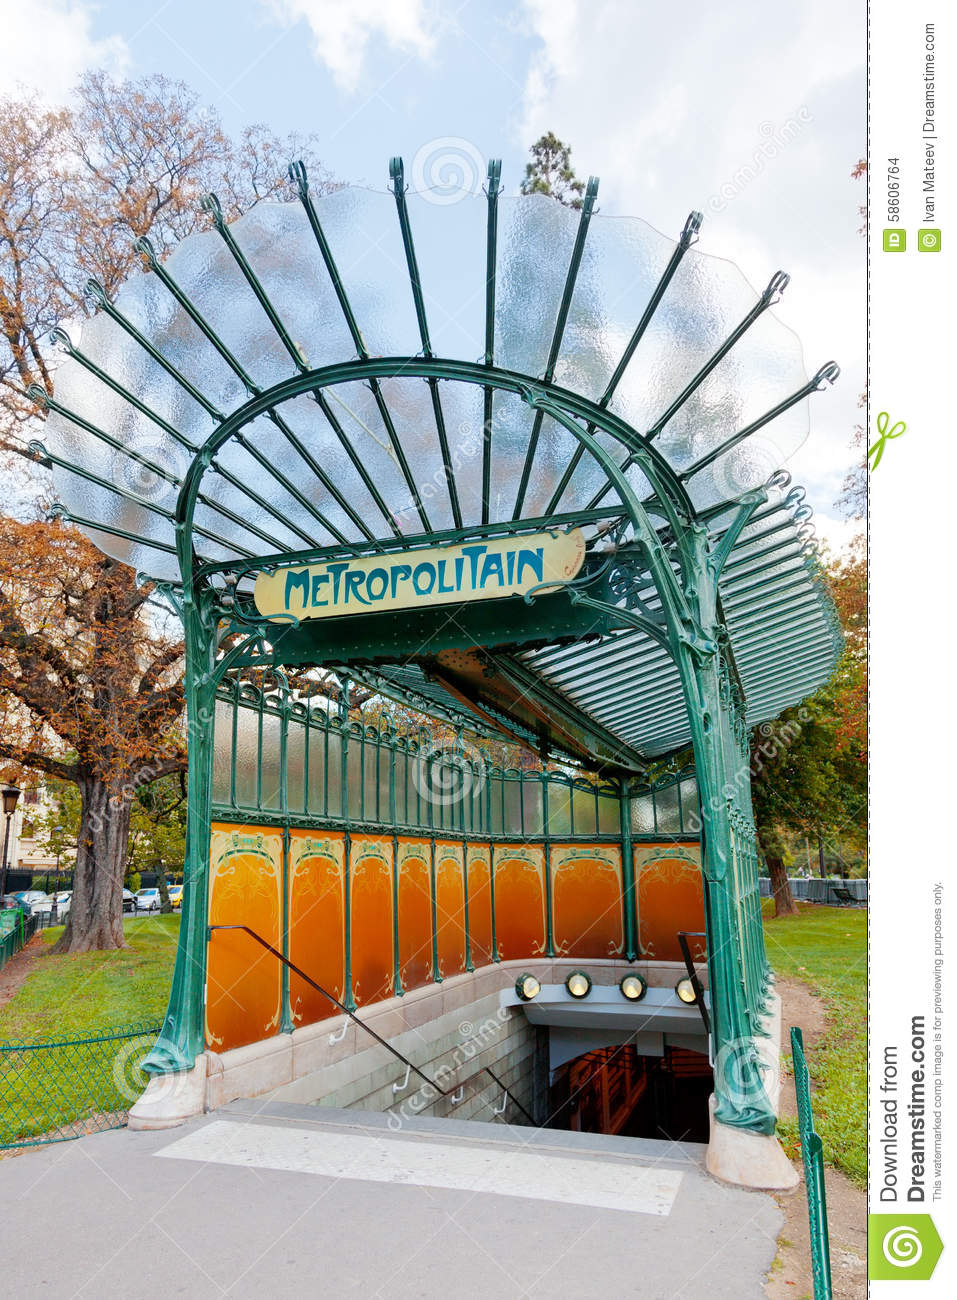 paris metropolitan editorial stock image image of street 58606764